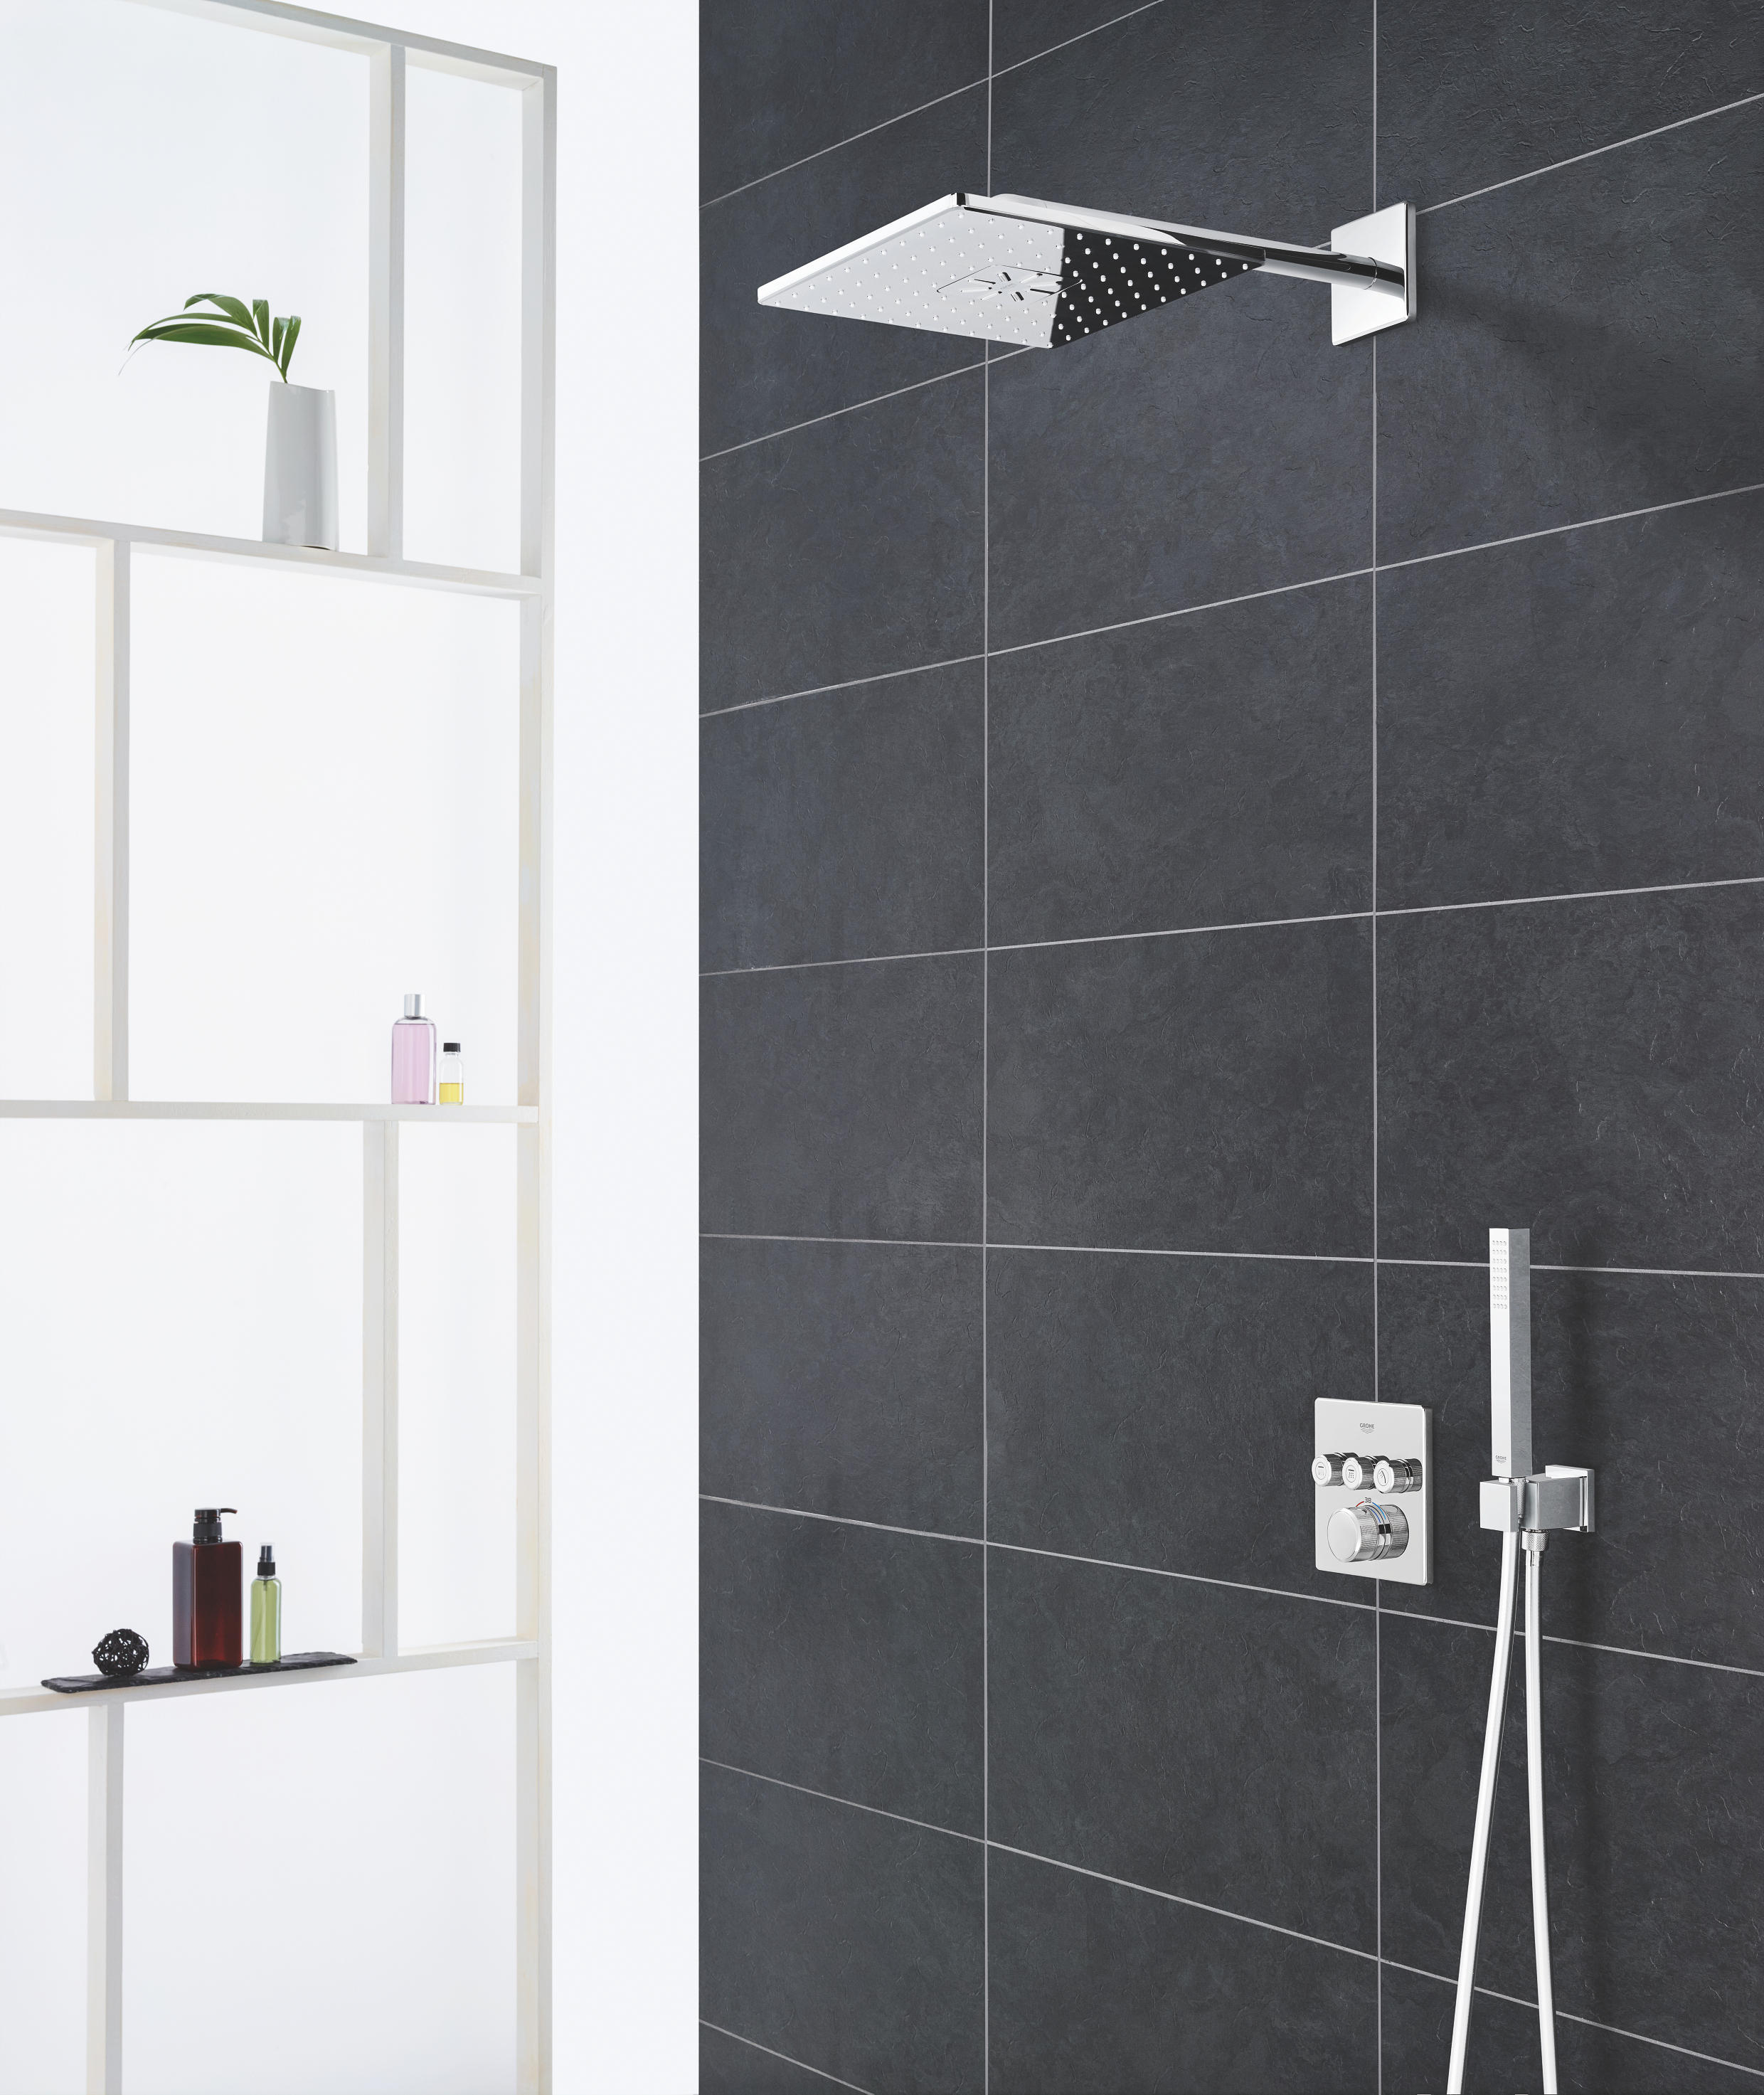 rainshower smartcontrol rough in box for head shower set 26 254 26 450 concealed elements from. Black Bedroom Furniture Sets. Home Design Ideas